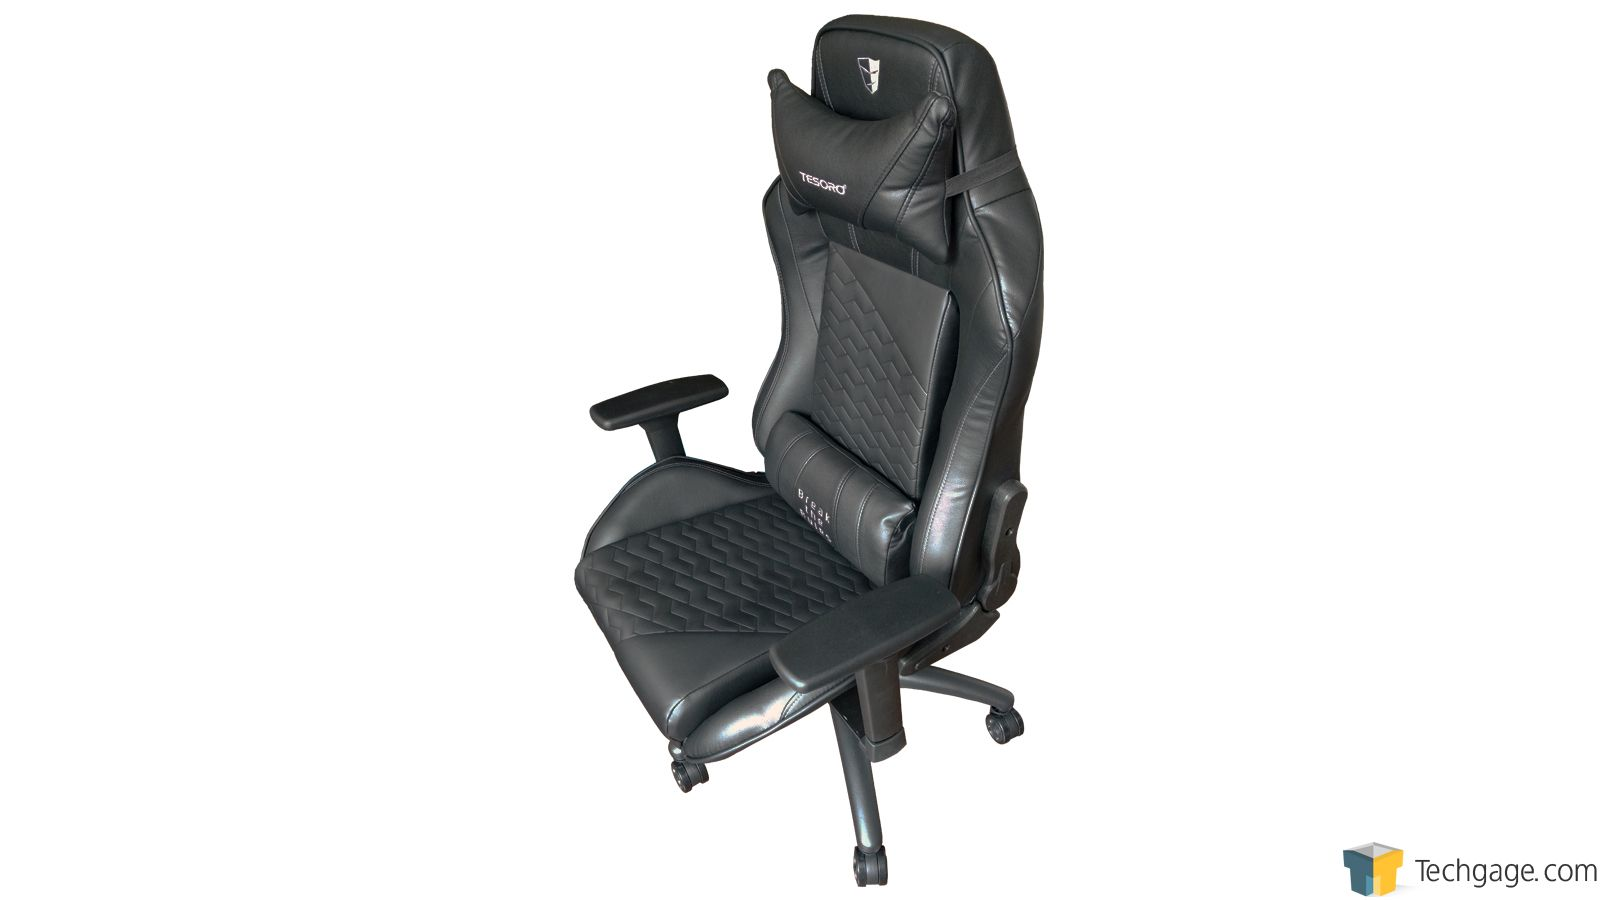 gaming chairs pc world rattan peacock chair for sale tesoro zone balance review  techgage